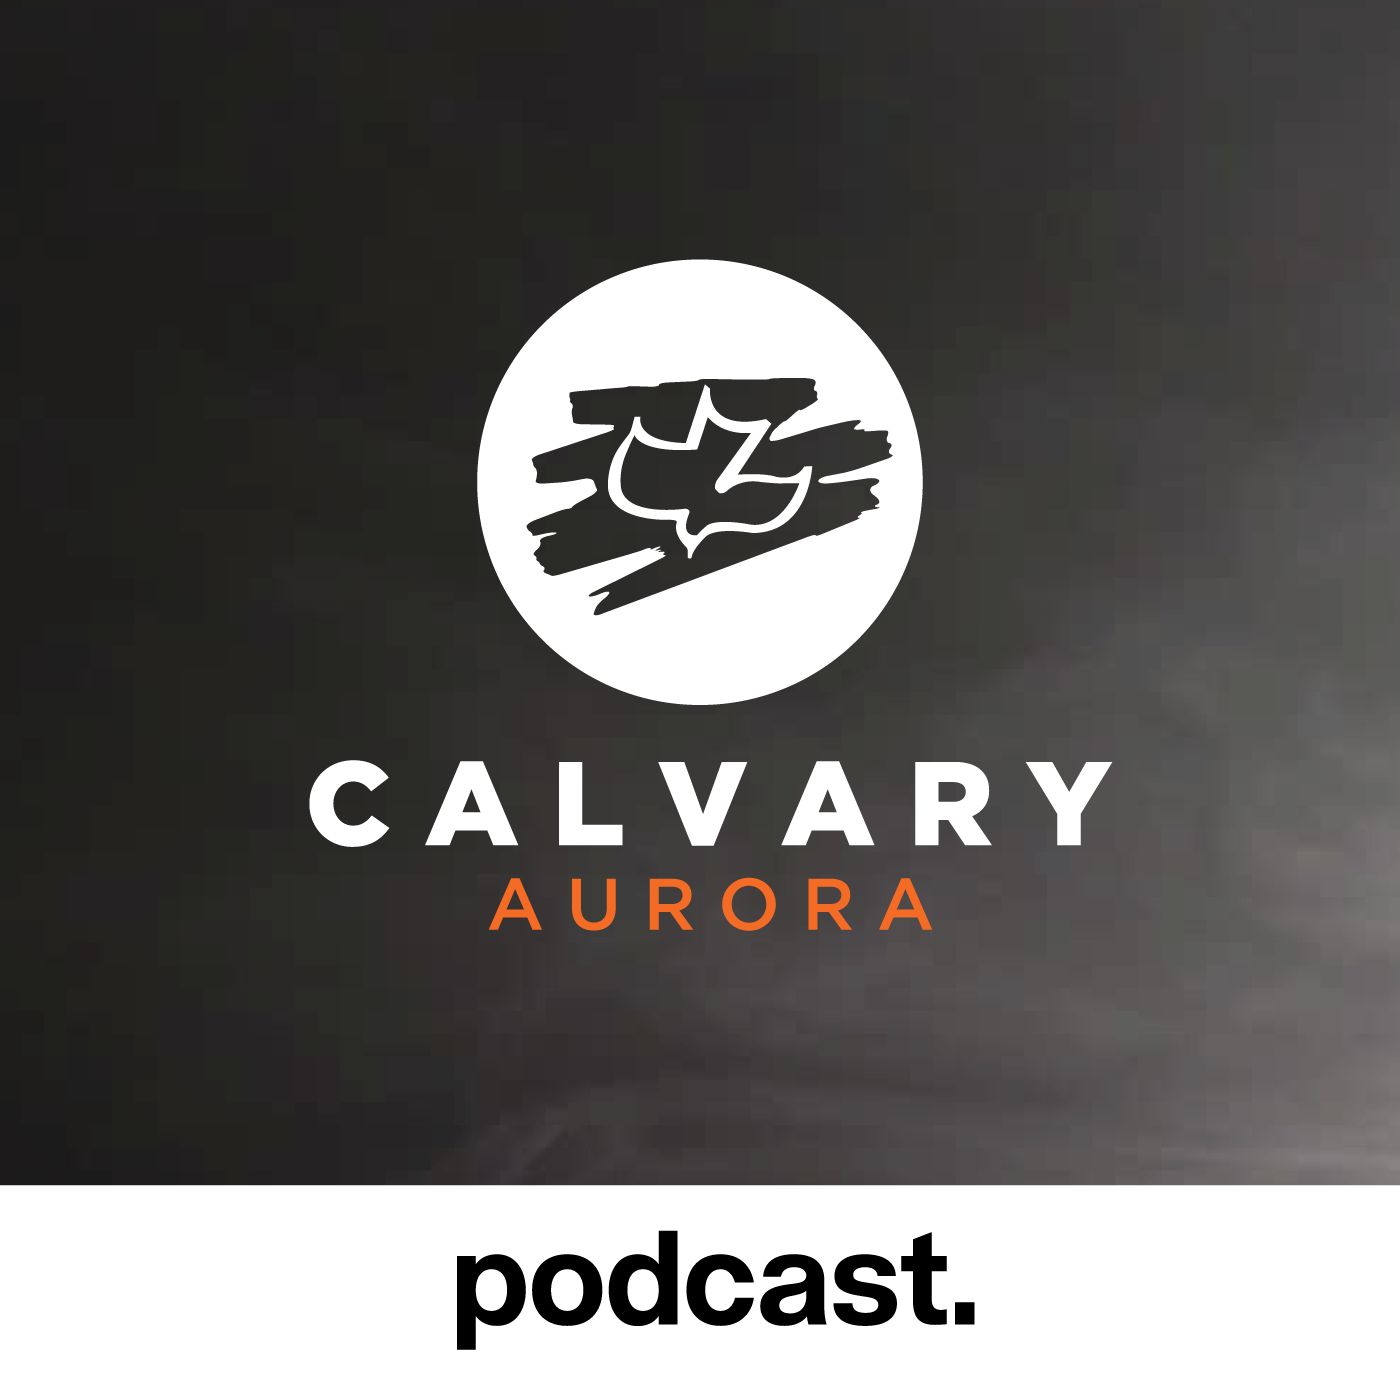 Calvary Aurora Podcast